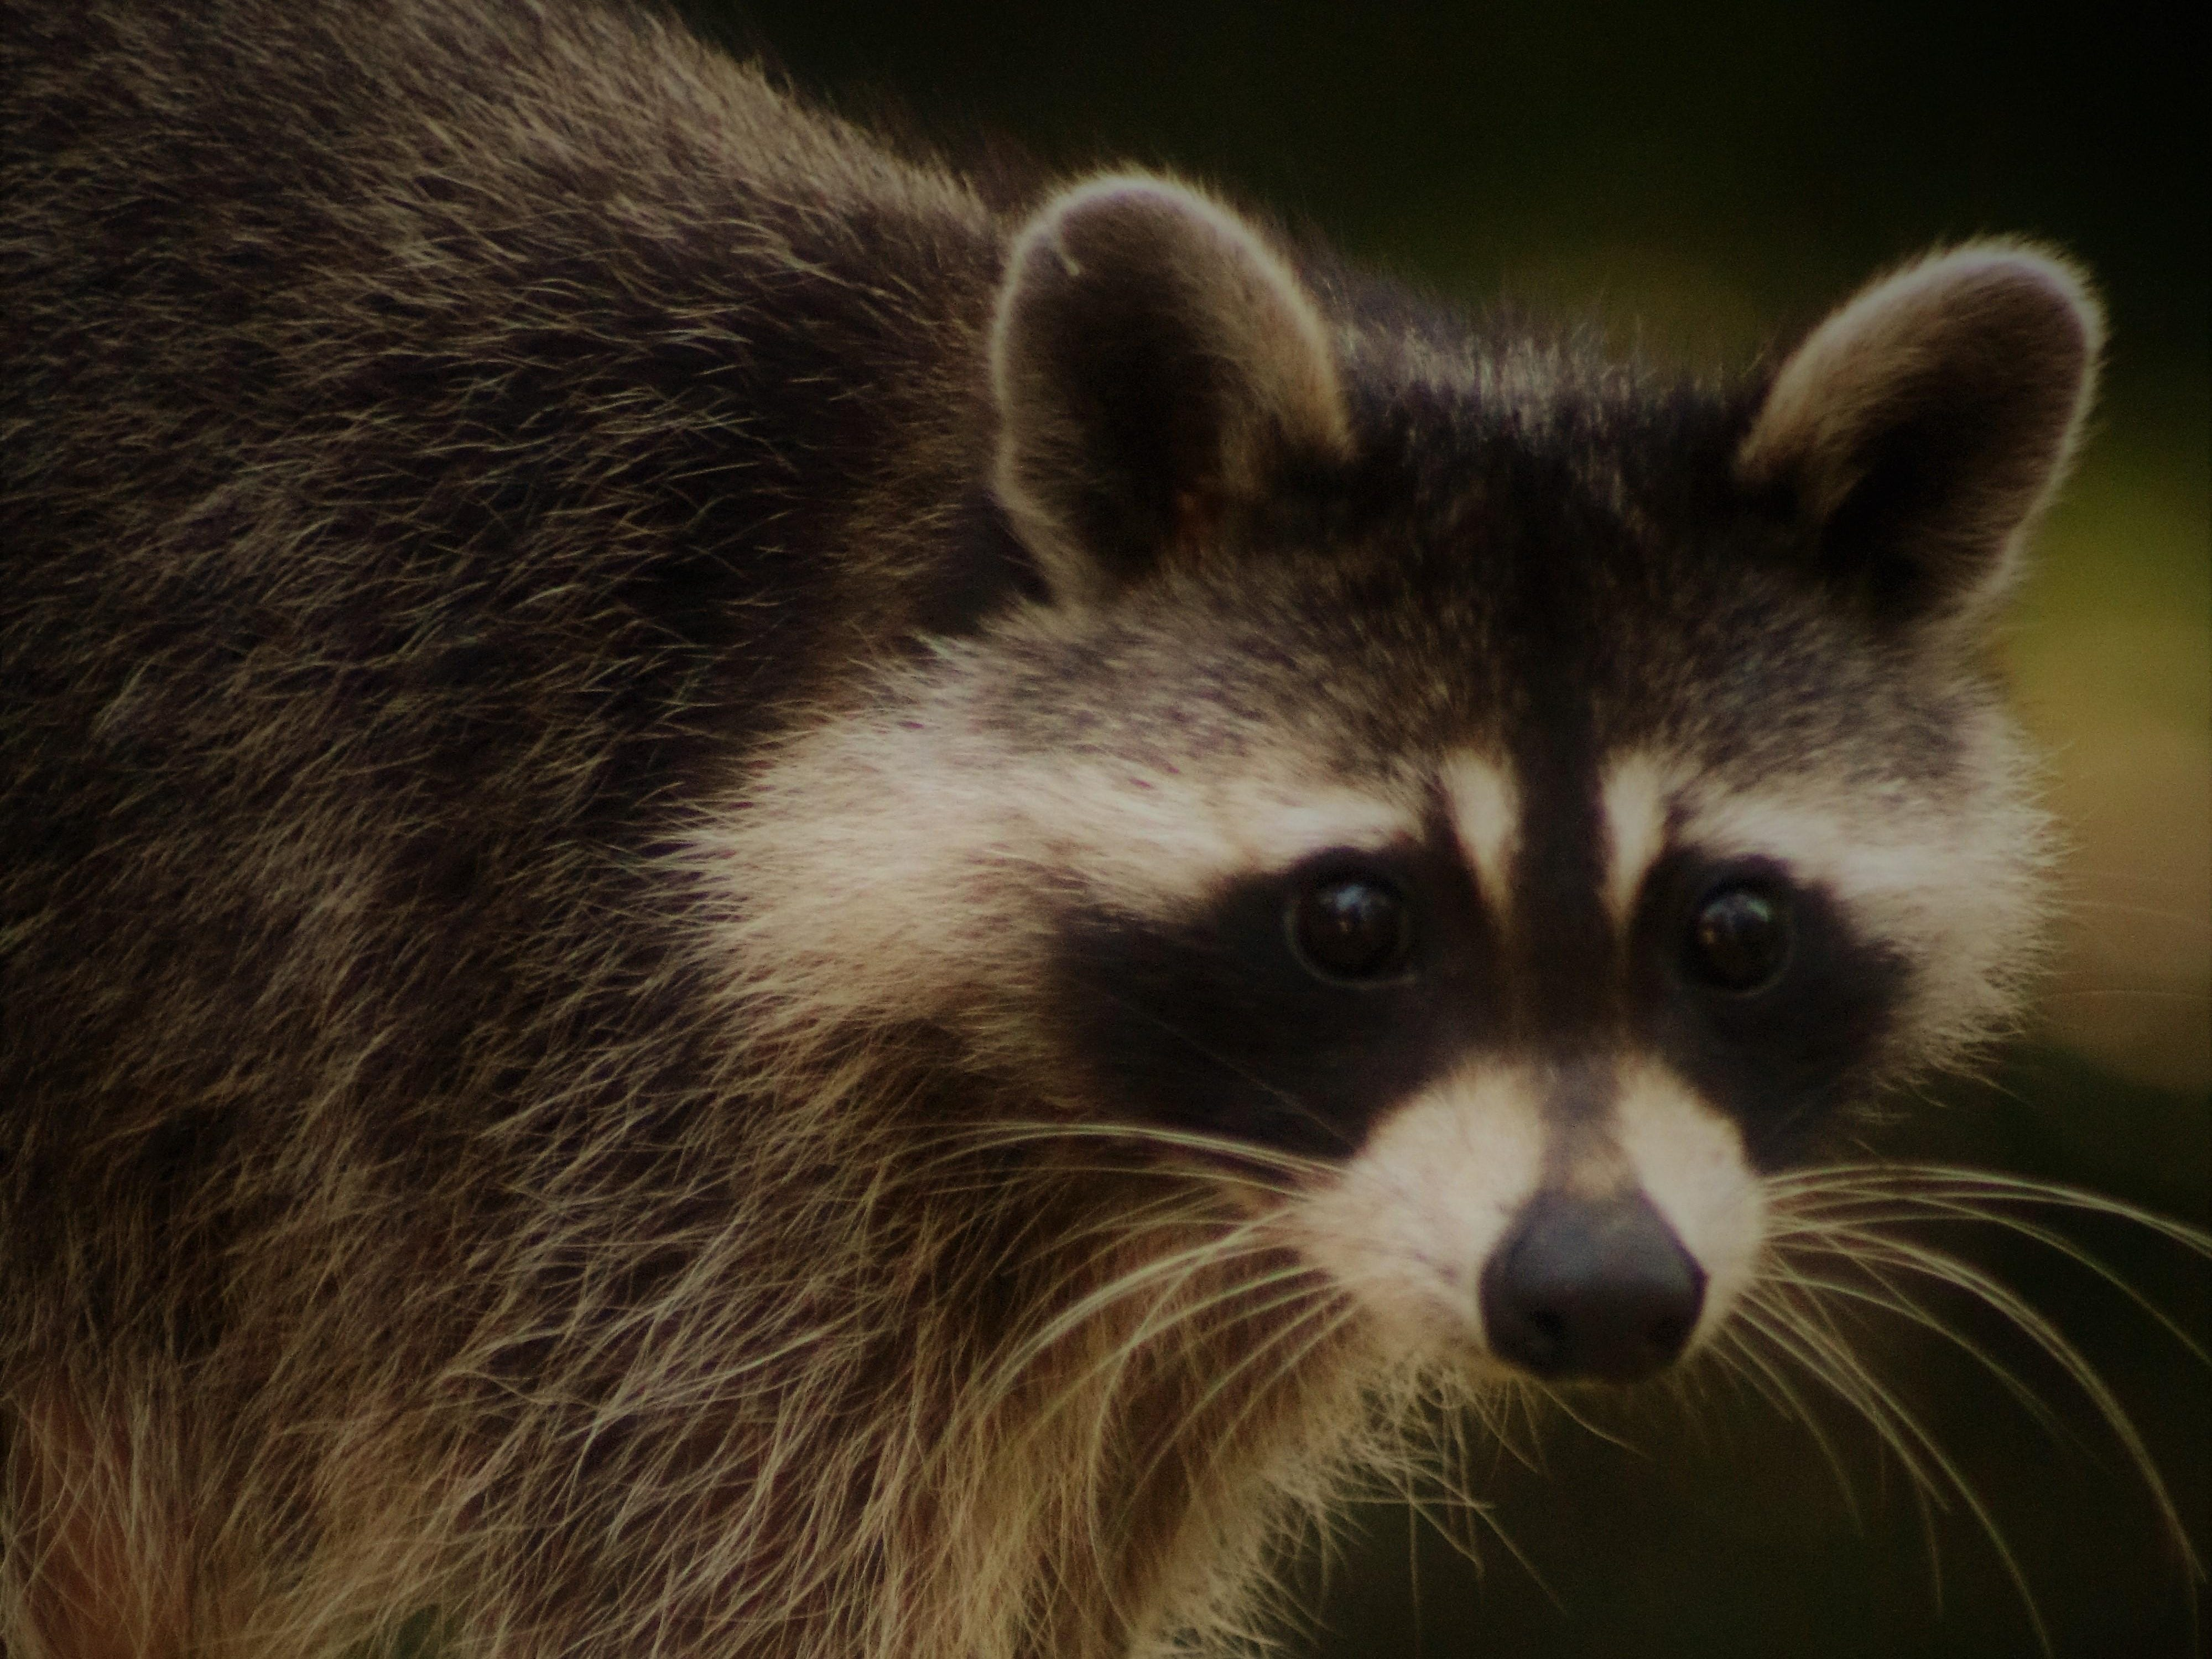 An unwanted visitor: This Raccoon is showing up a lot on our porch....came a bit early this day.